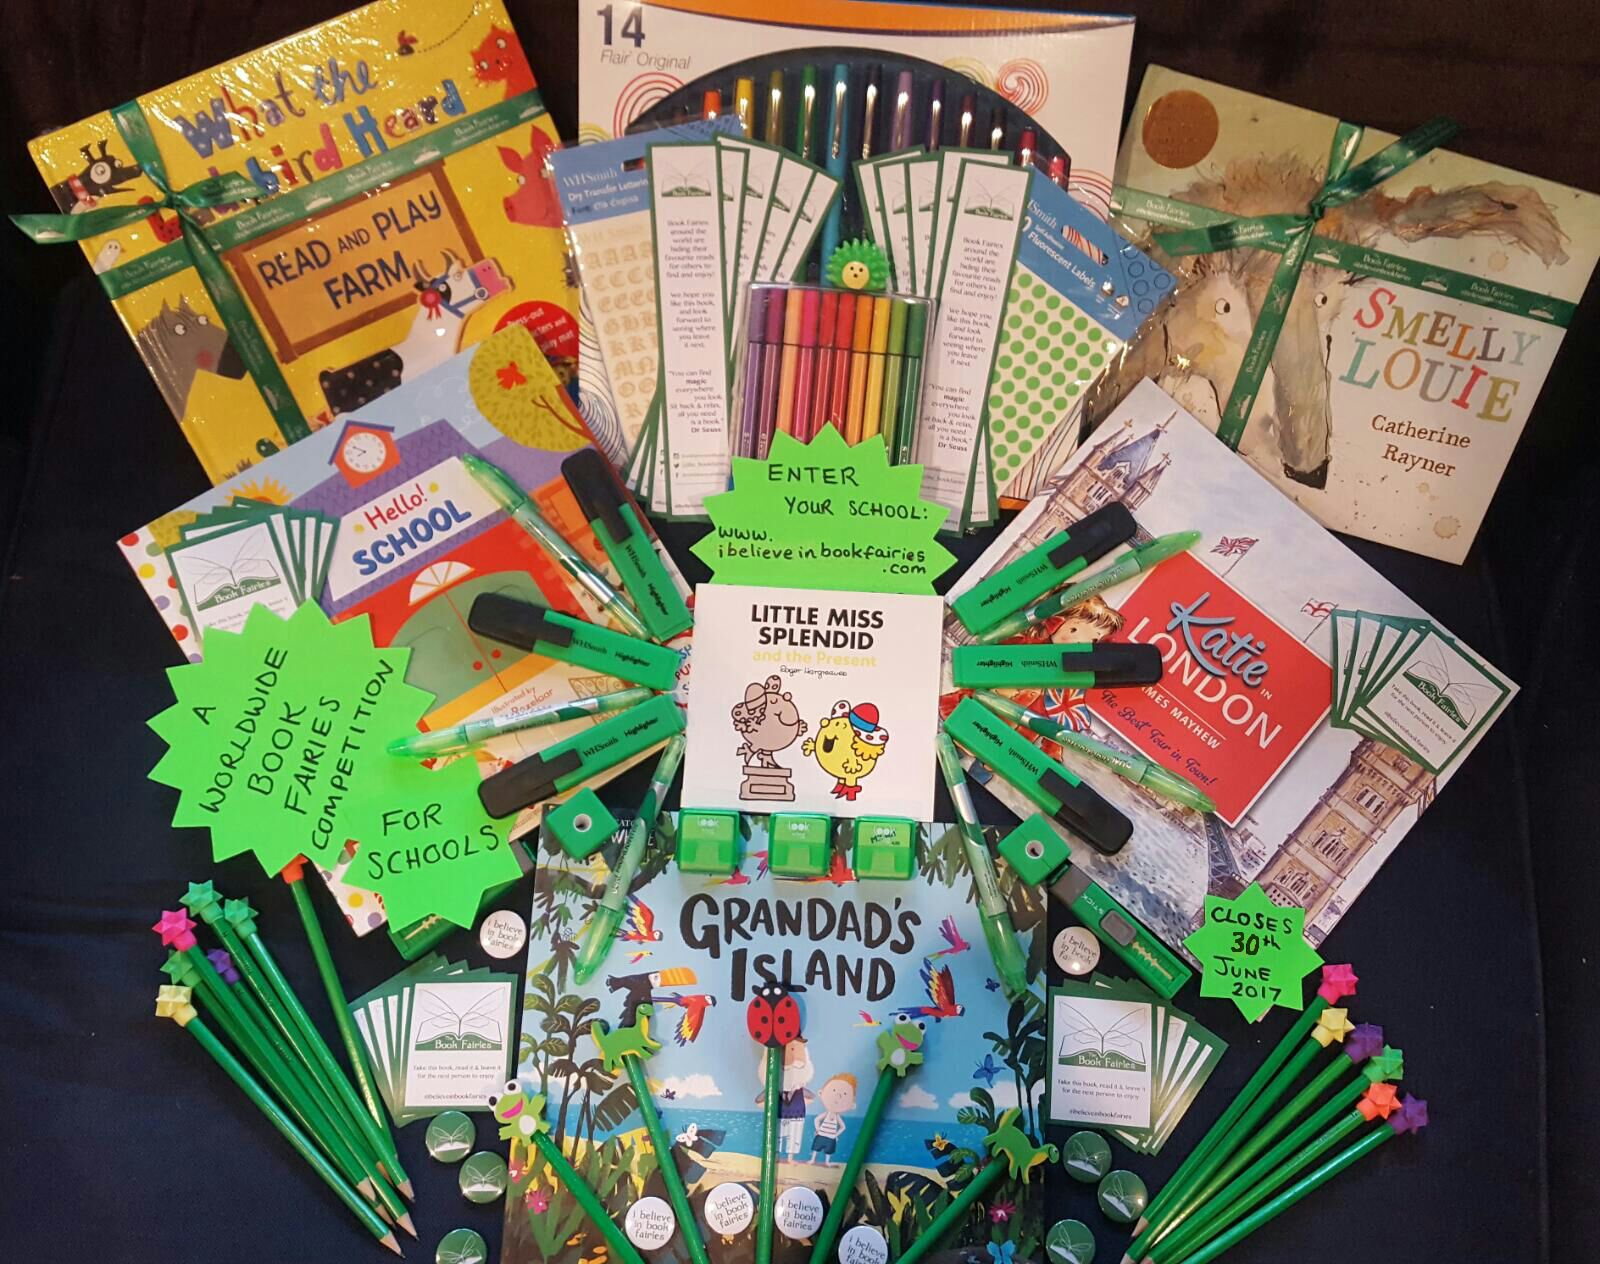 the book fairies: a competition for schools! – the book fairies